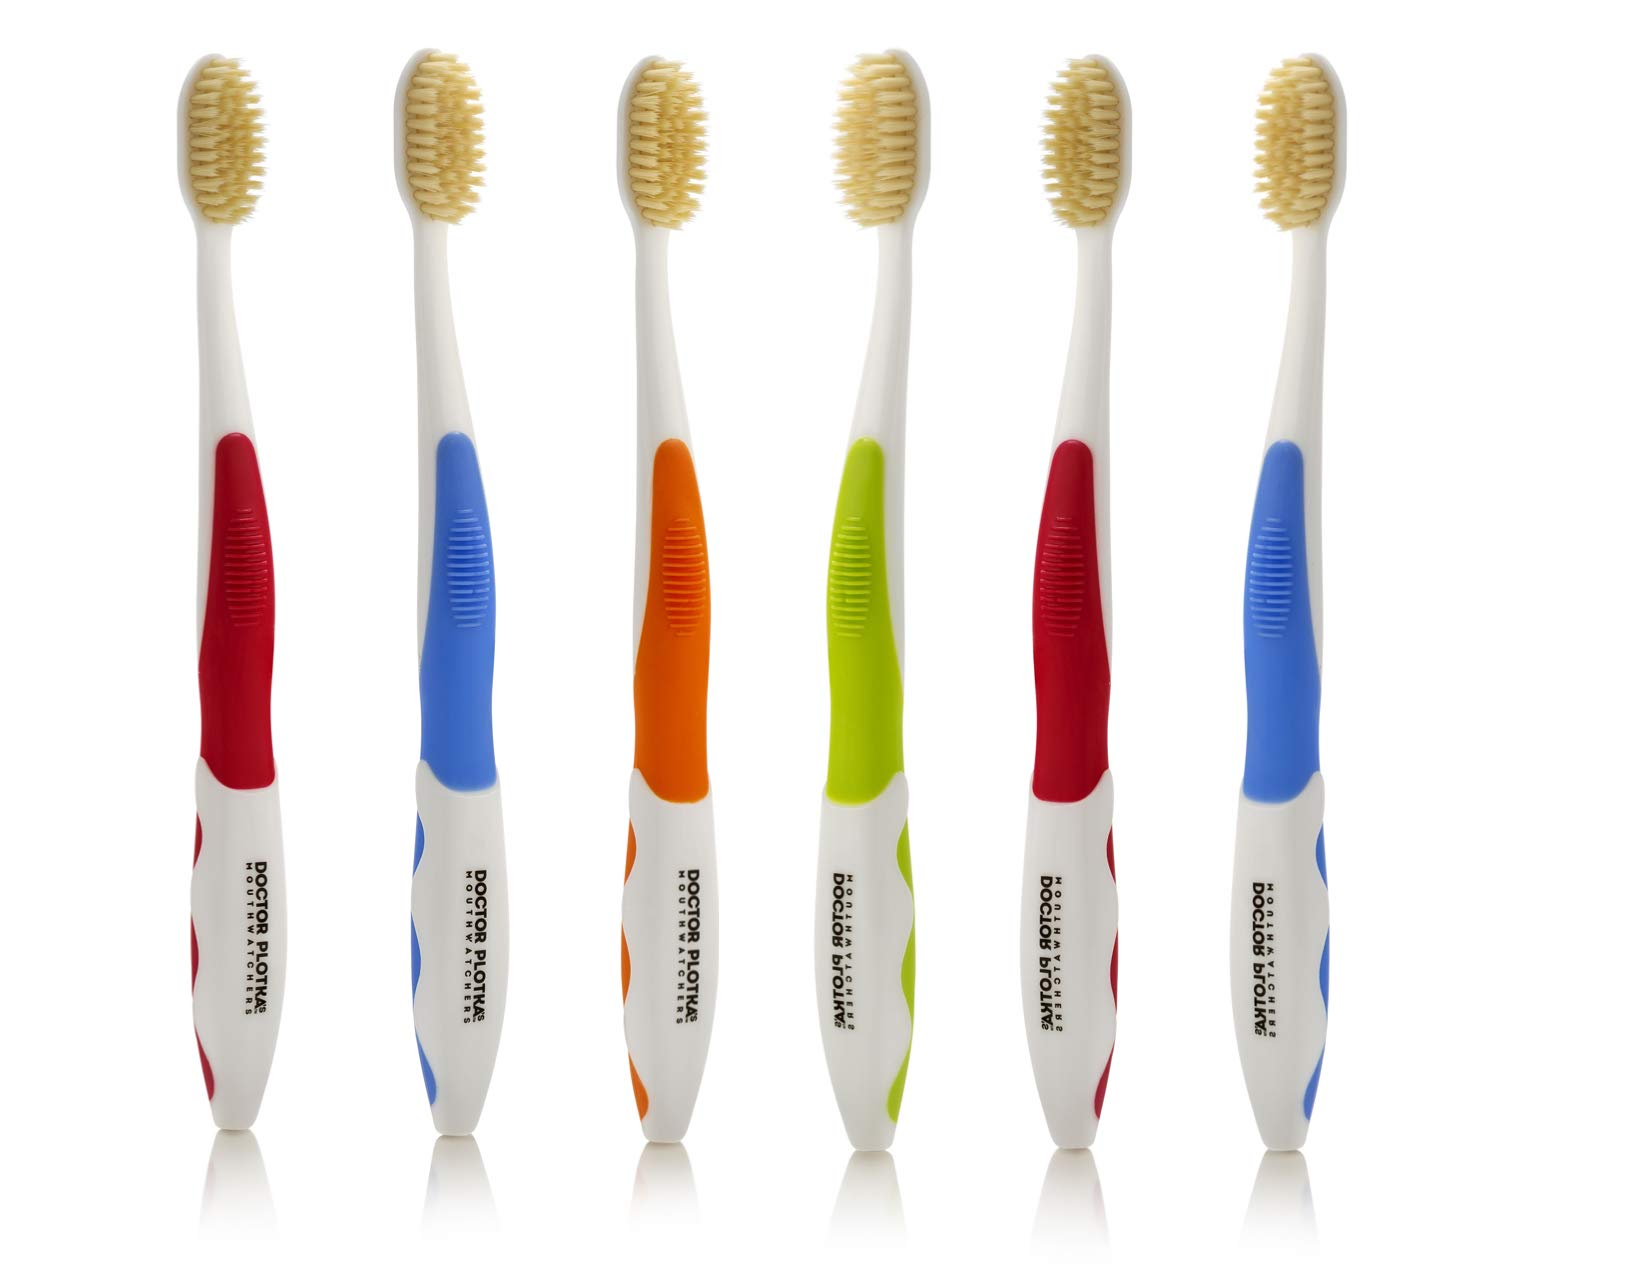 Doctor Plotka's Mouthwatchers Antimicrobial Floss Bristle Silver Toothbrush, Adult, 6 Pack